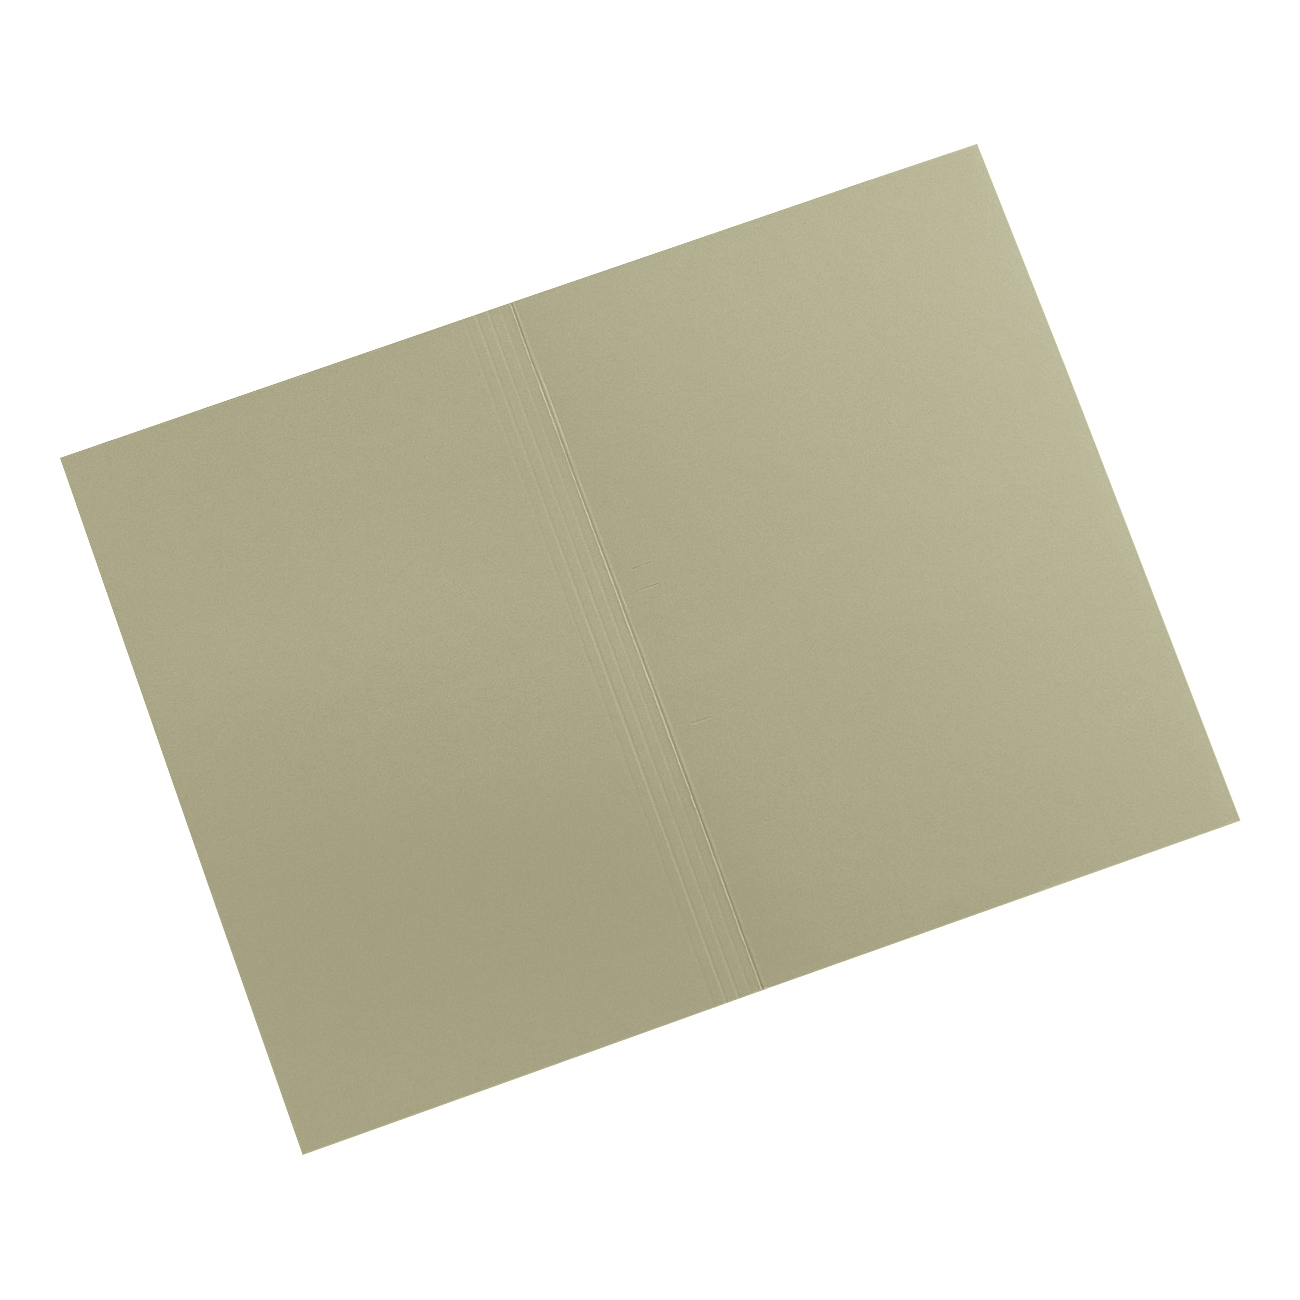 5 Star Elite Square Cut Folders 315gsm Heavyweight Manilla Foolscap Green [Pack 100]